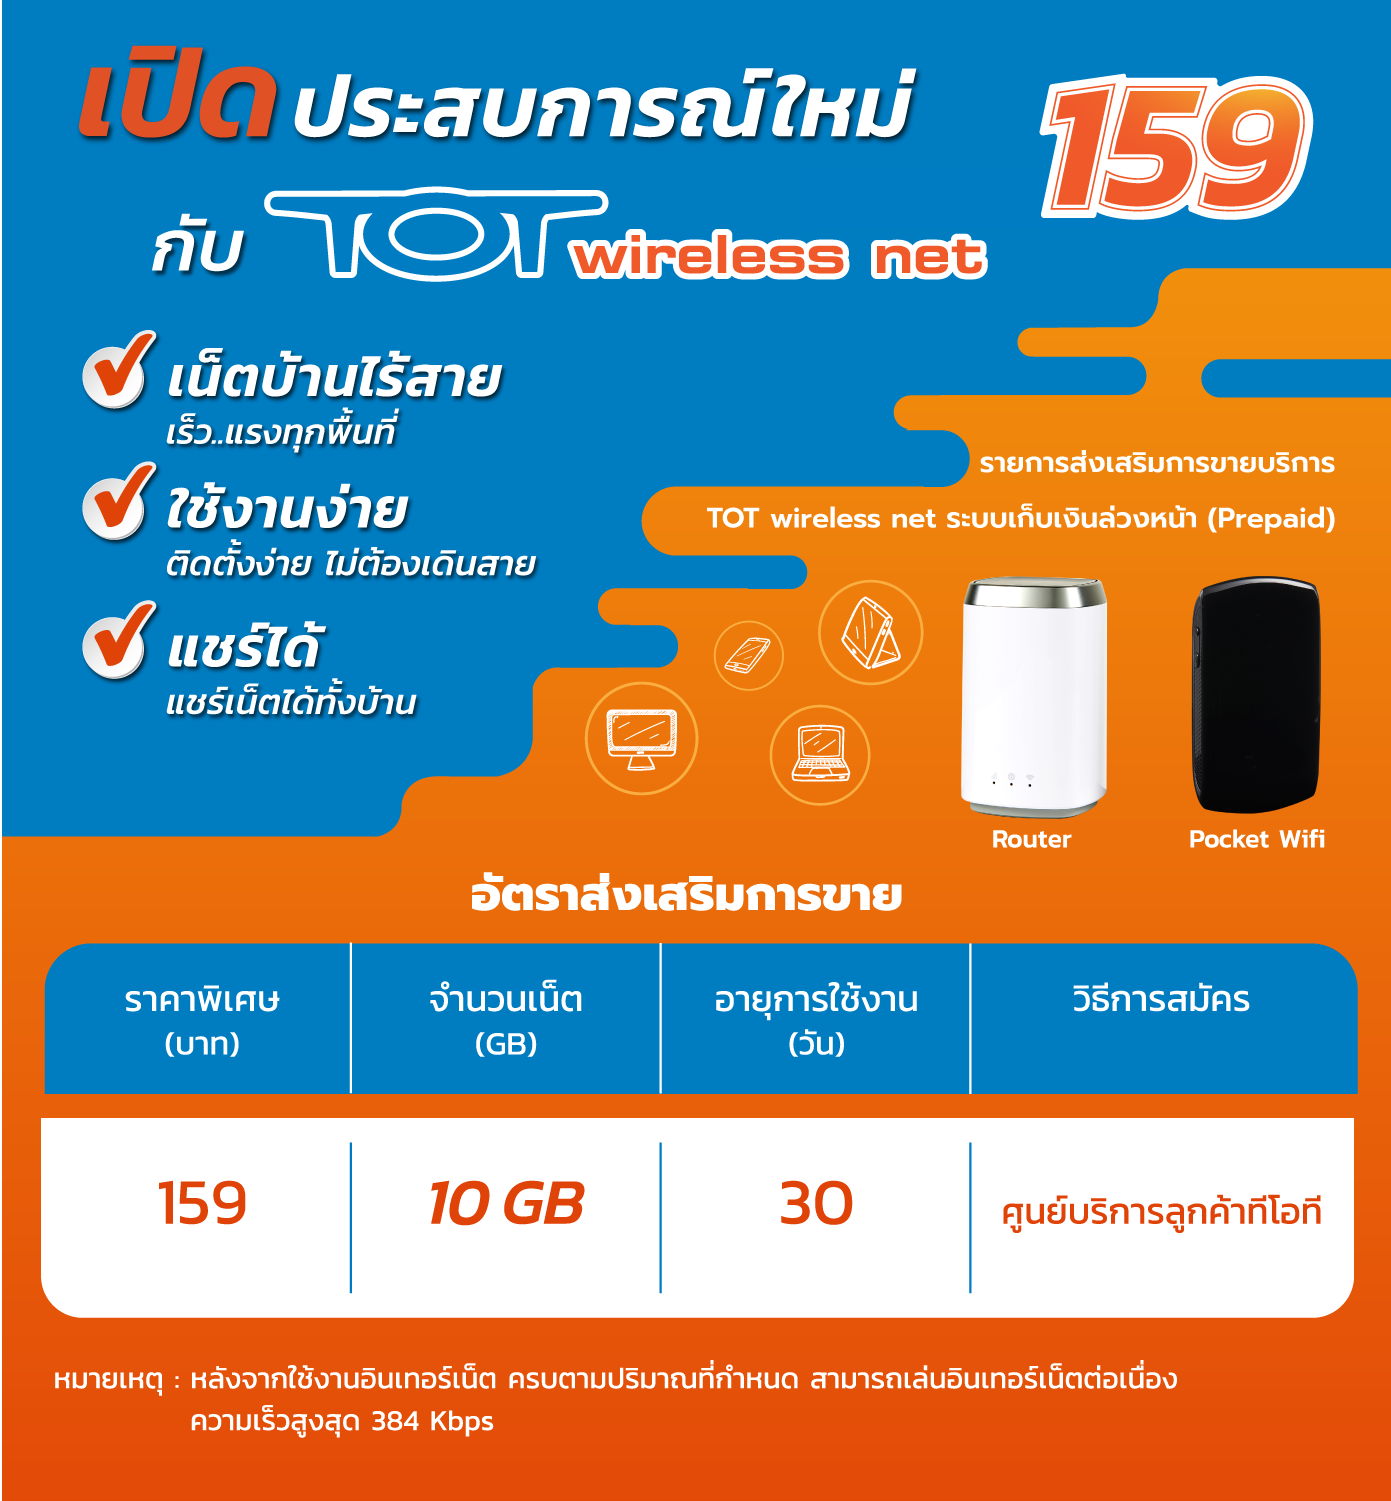 TOT wireless net_Promotion_Connent_01